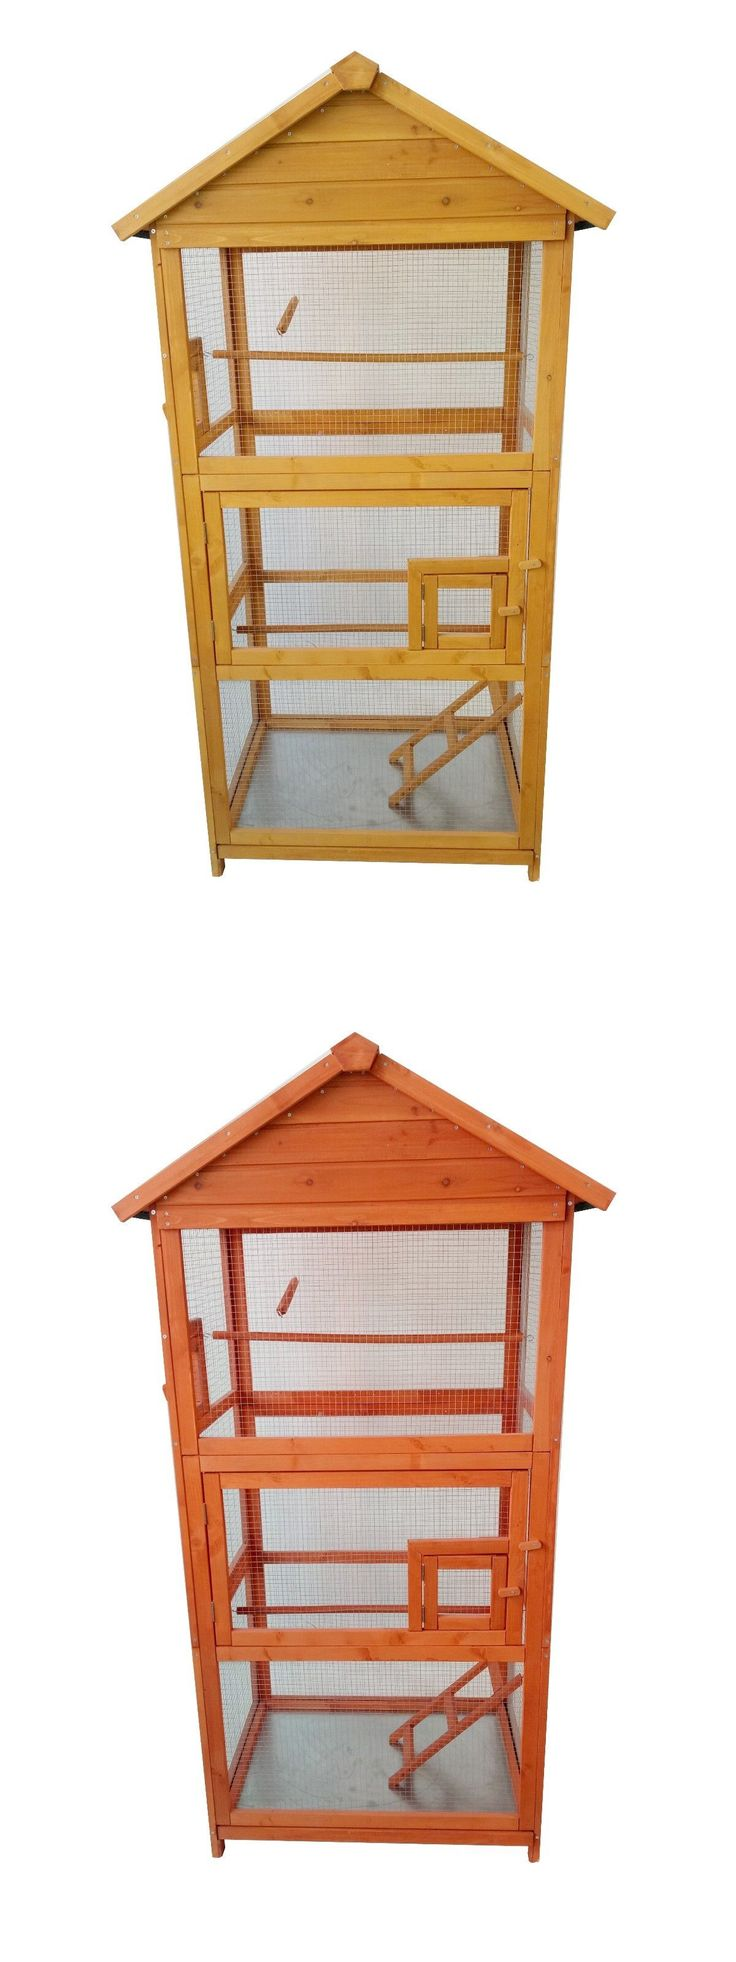 Cages 46289: Mcombo 70 Wood Bird Cage Parrot Finch Cockatoo Macaw Aviary Pet Play House -> BUY IT NOW ONLY: $98.99 on eBay!